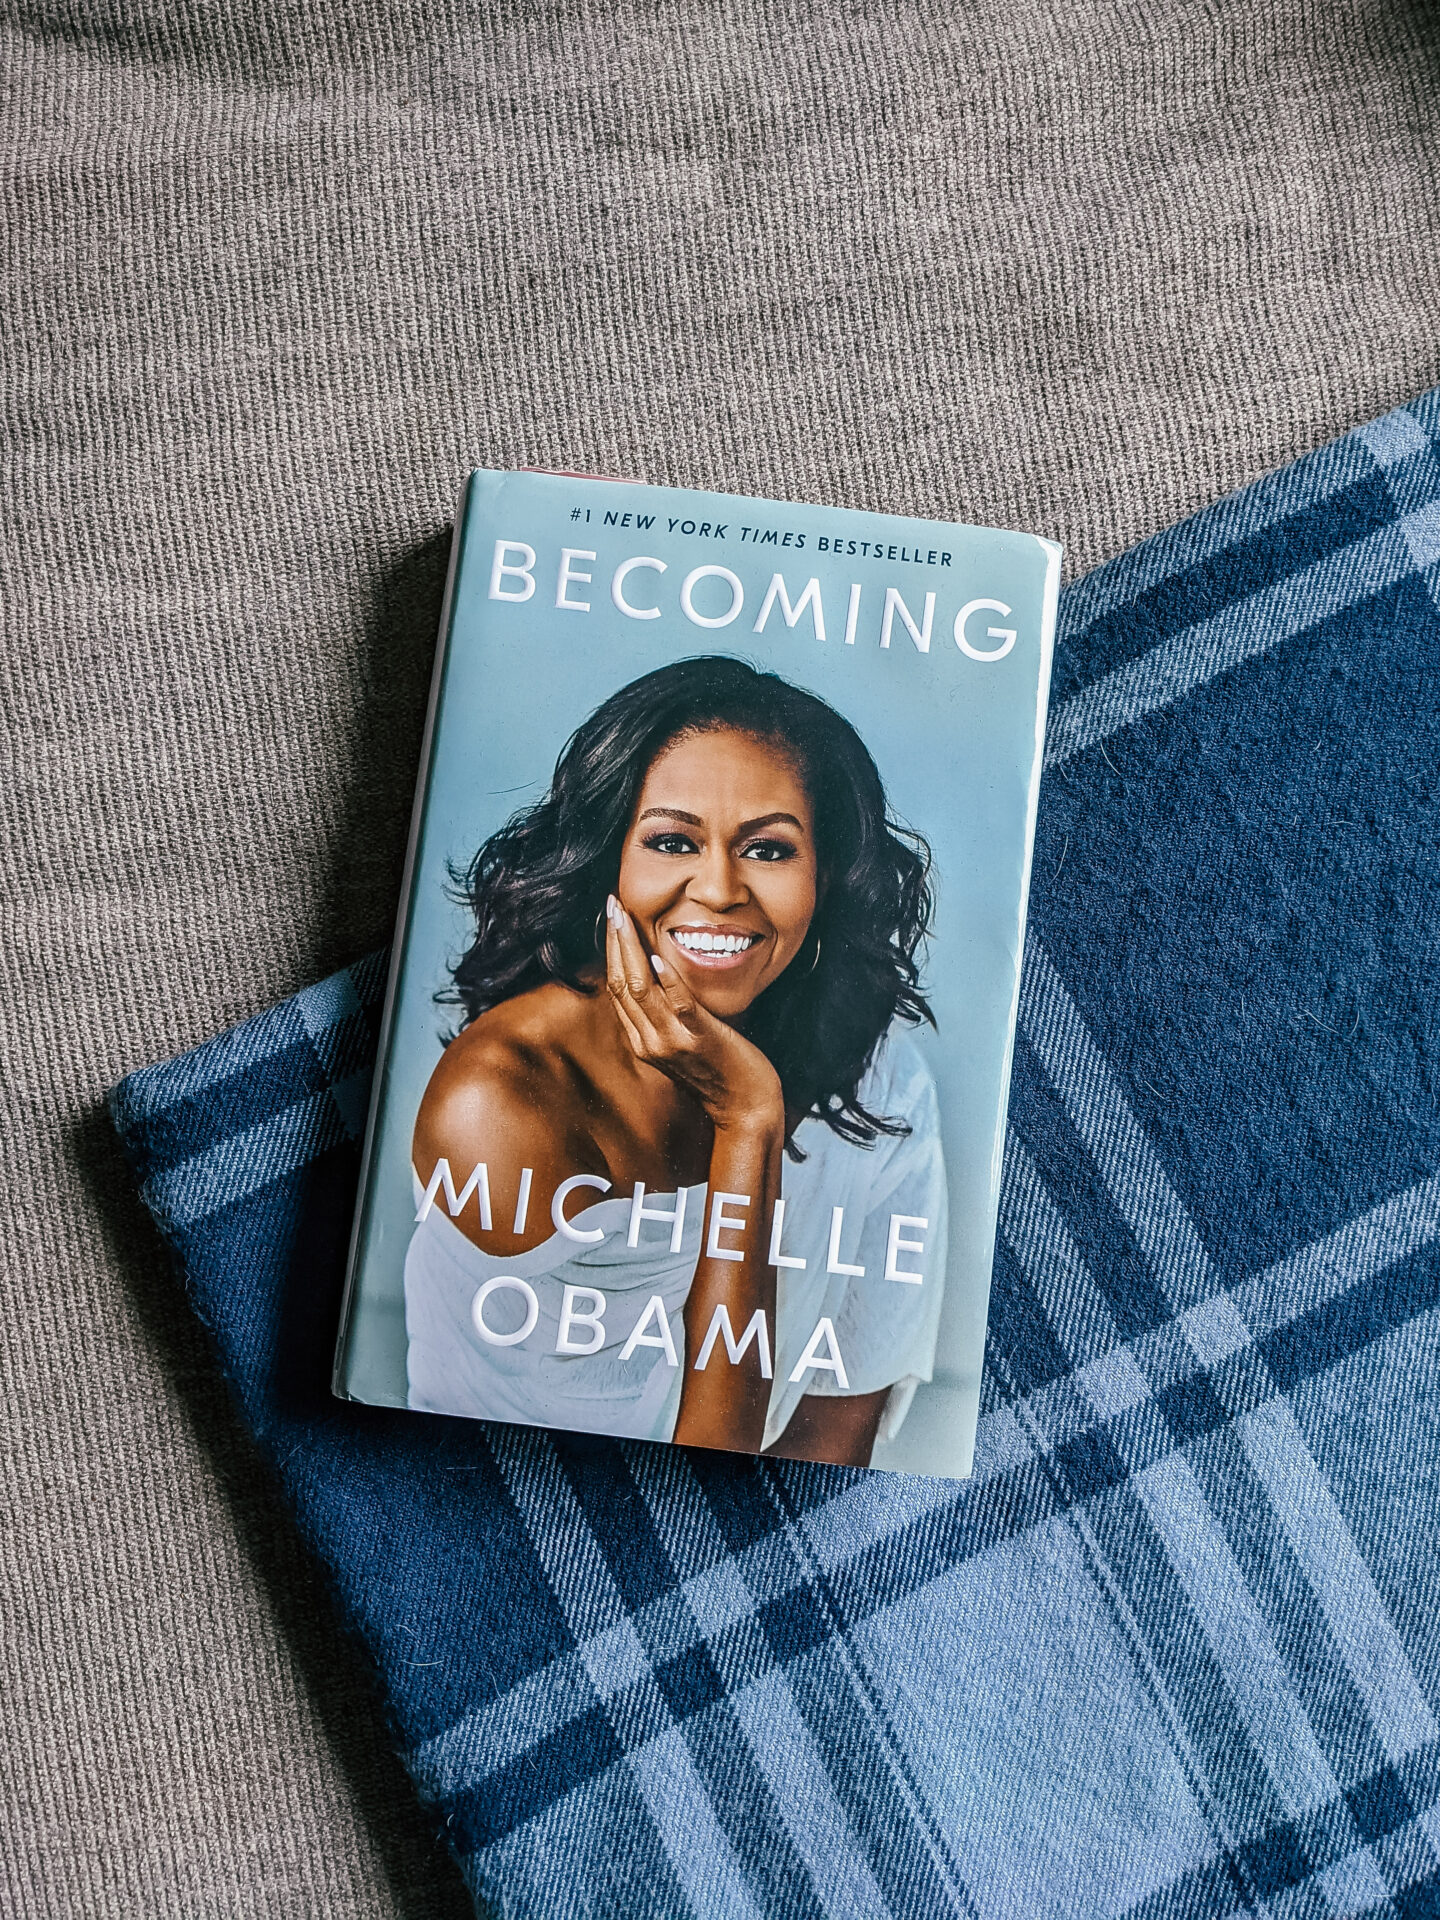 The book I read this month, Becoming by Michelle Obama, placed on a tan fabric couch and blue plaid blanket.